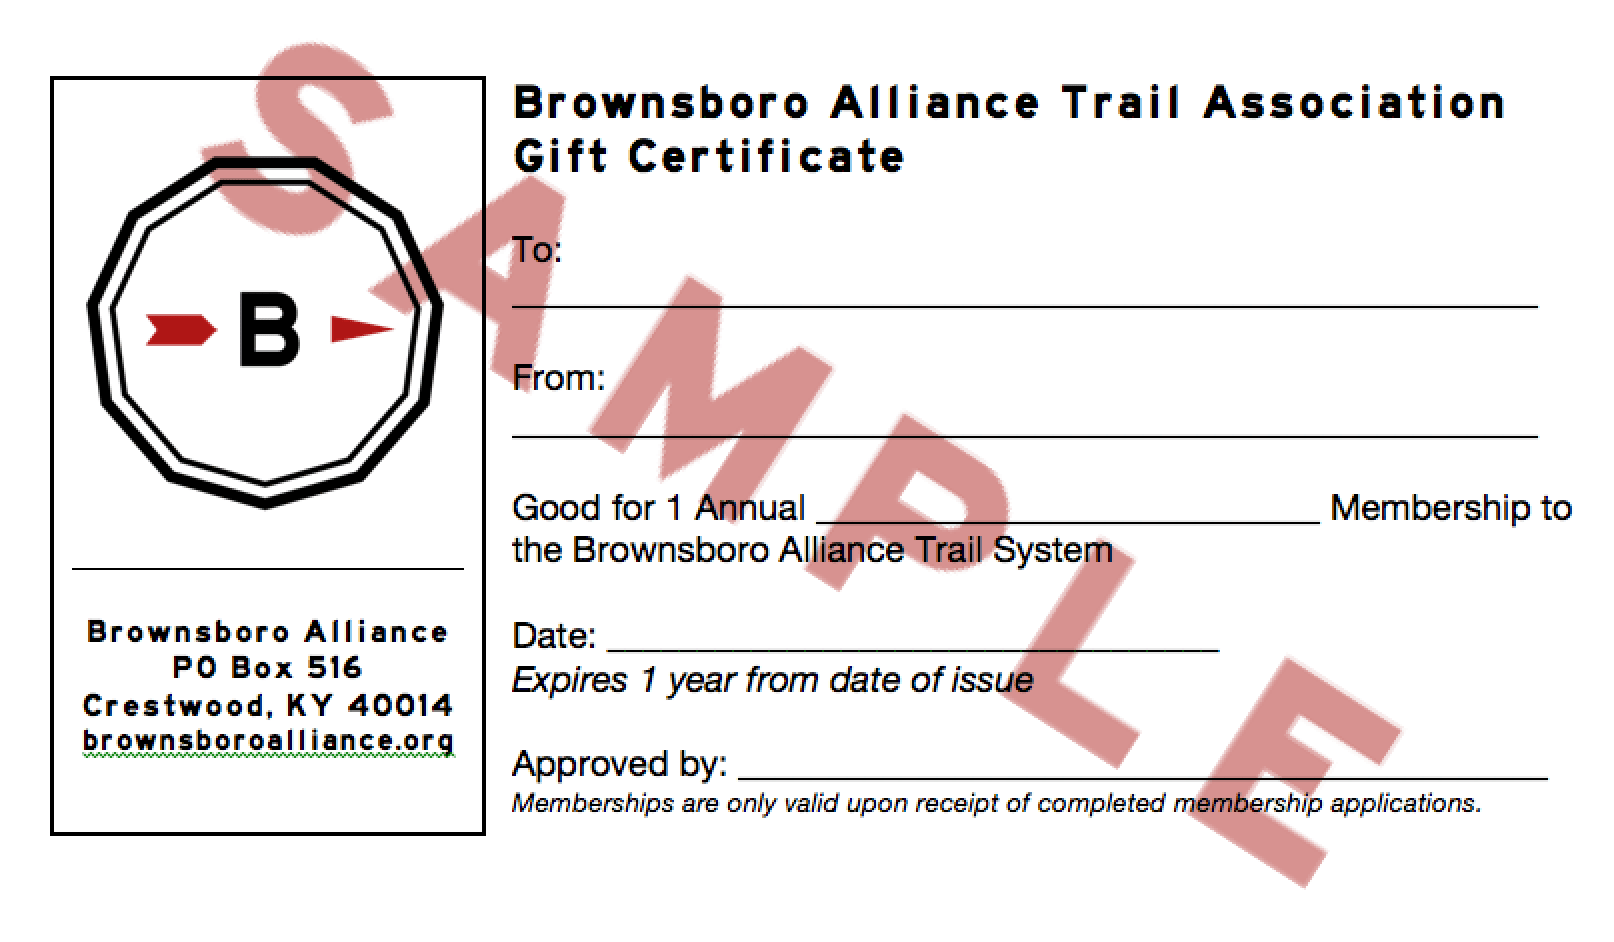 Gift certificates available brownsboro alliance gift certificates for a bata membership are available through our website visit httpbrownsboroalliancetrailsgift certificates for purchasing xflitez Gallery